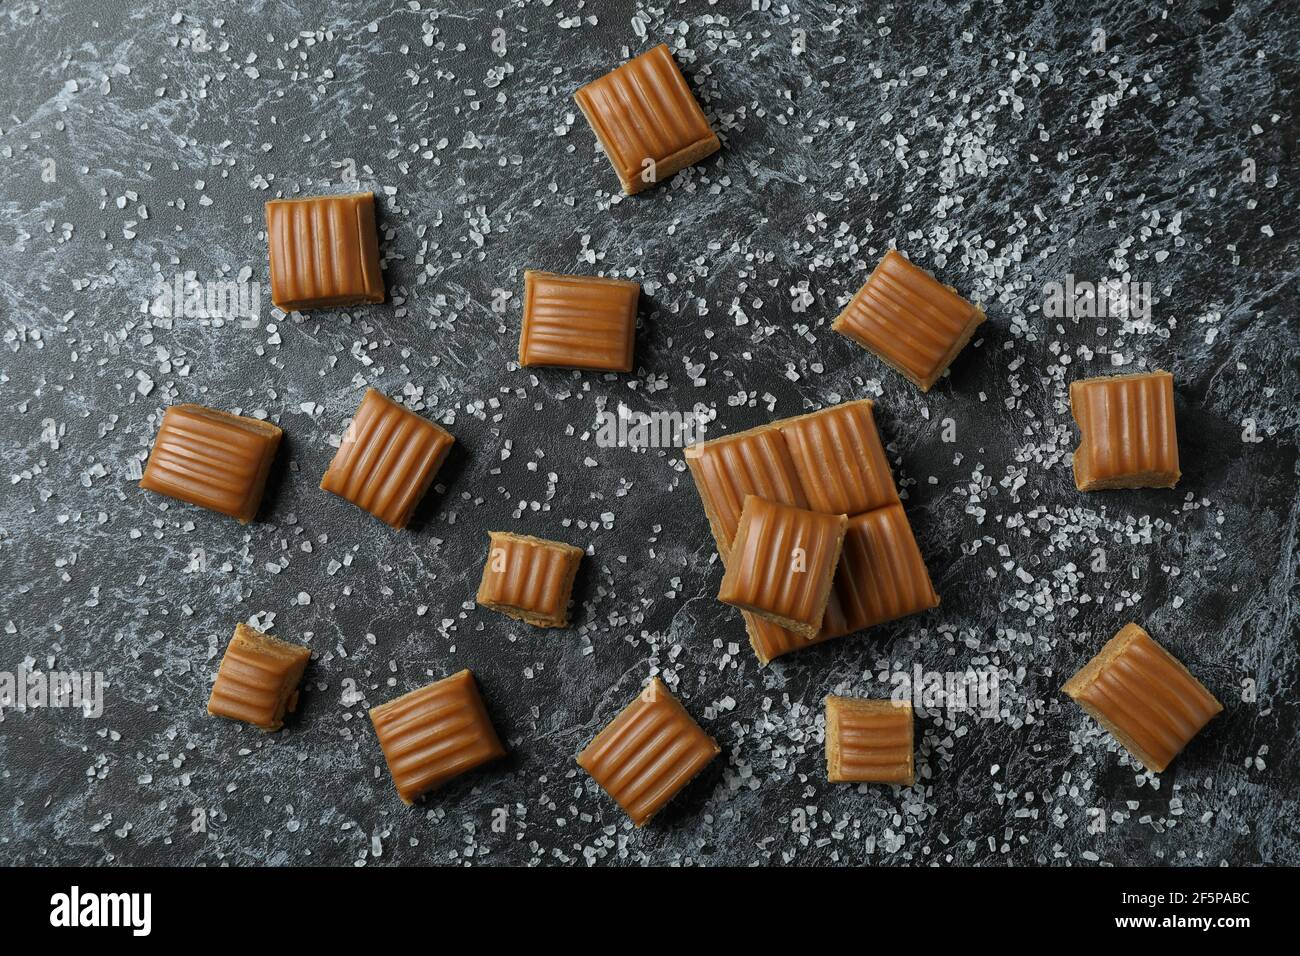 Salted caramel pieces on black smoky background Stock Photo